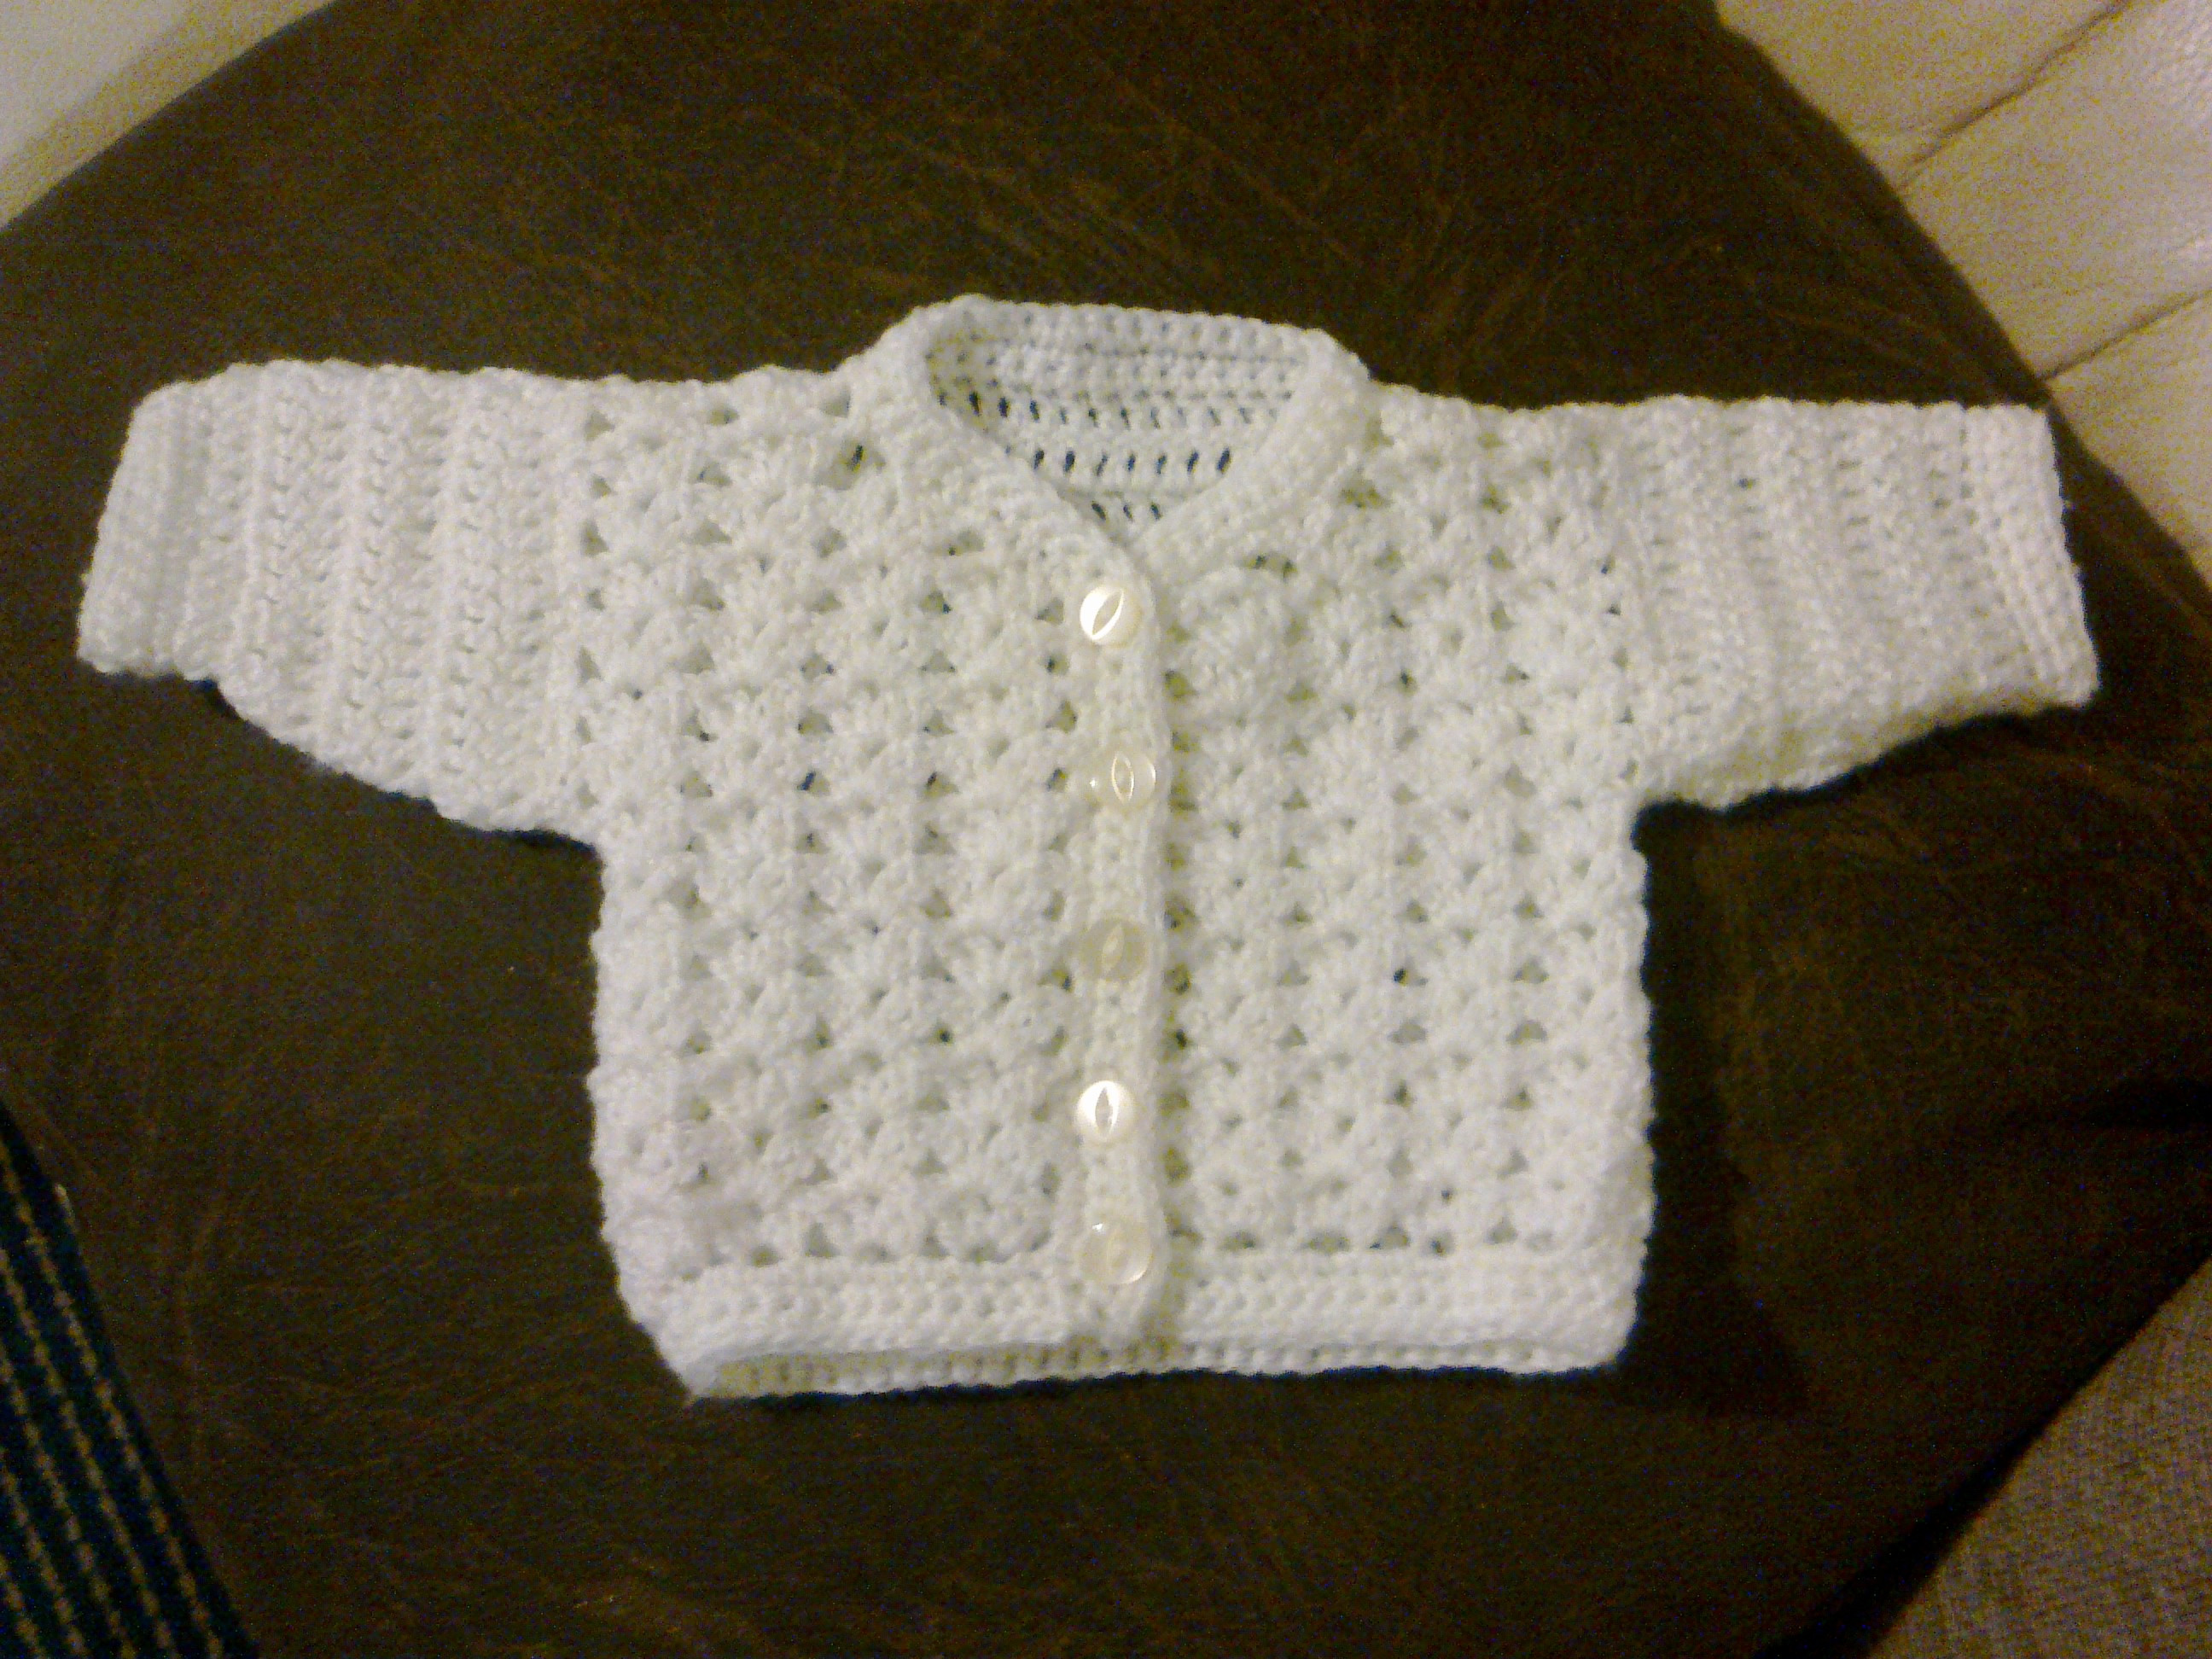 Crochet Sweater Pattern Free Unique Easy Baby Sweater Crochet Pattern Of Unique 50 Images Crochet Sweater Pattern Free